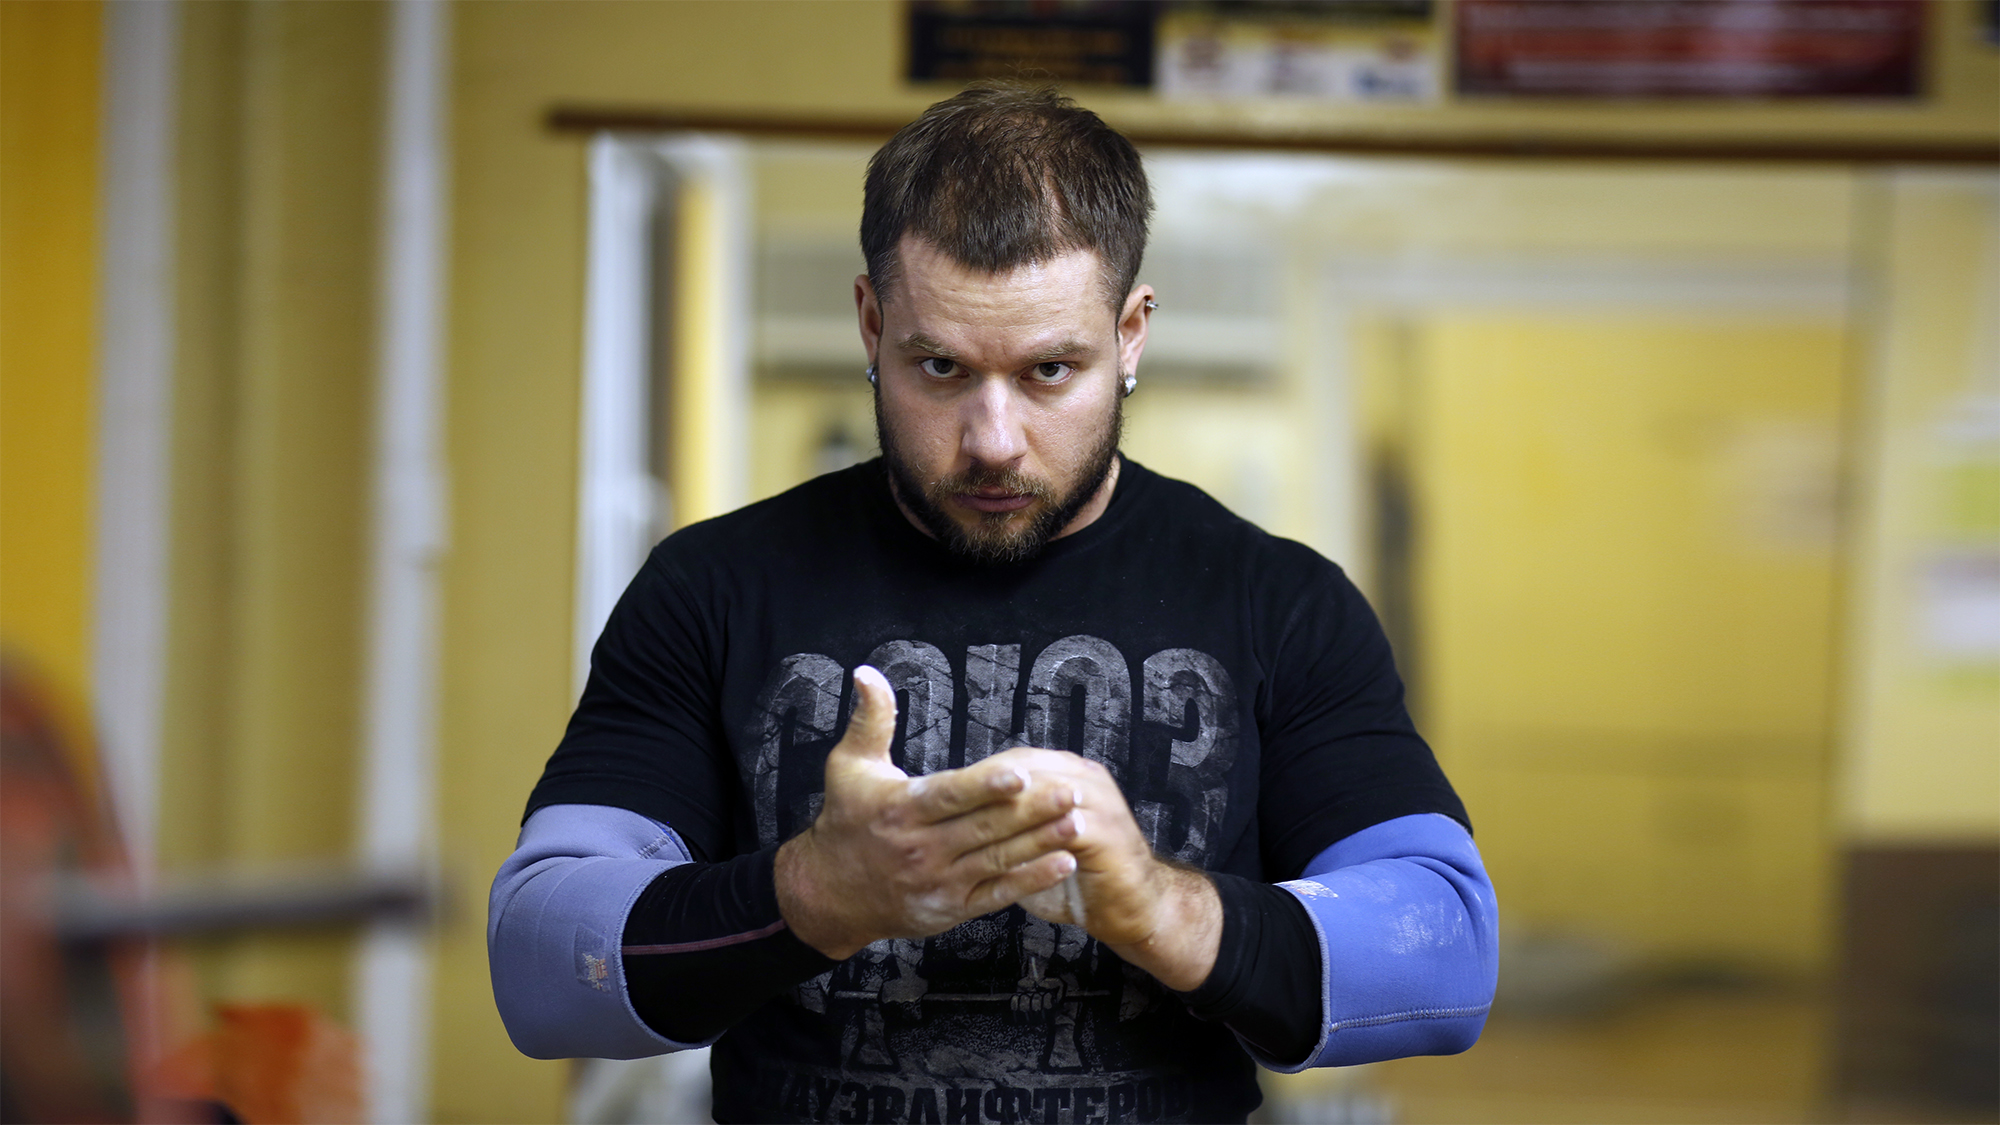 Aleksey Nikulin's workout